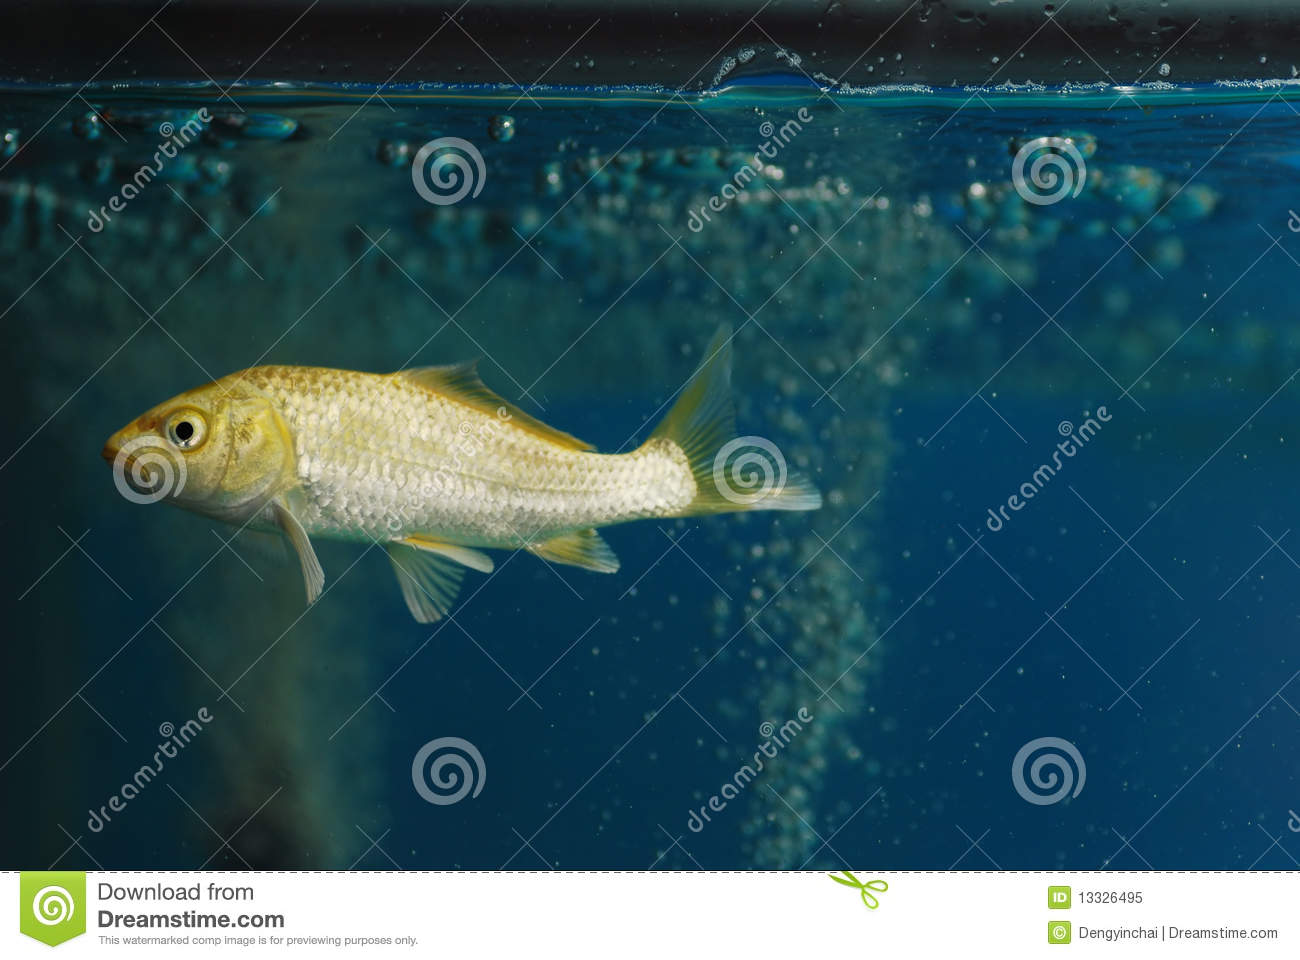 A koi carp fish swim in the glass aquarium stock image for Carp in a fish tank